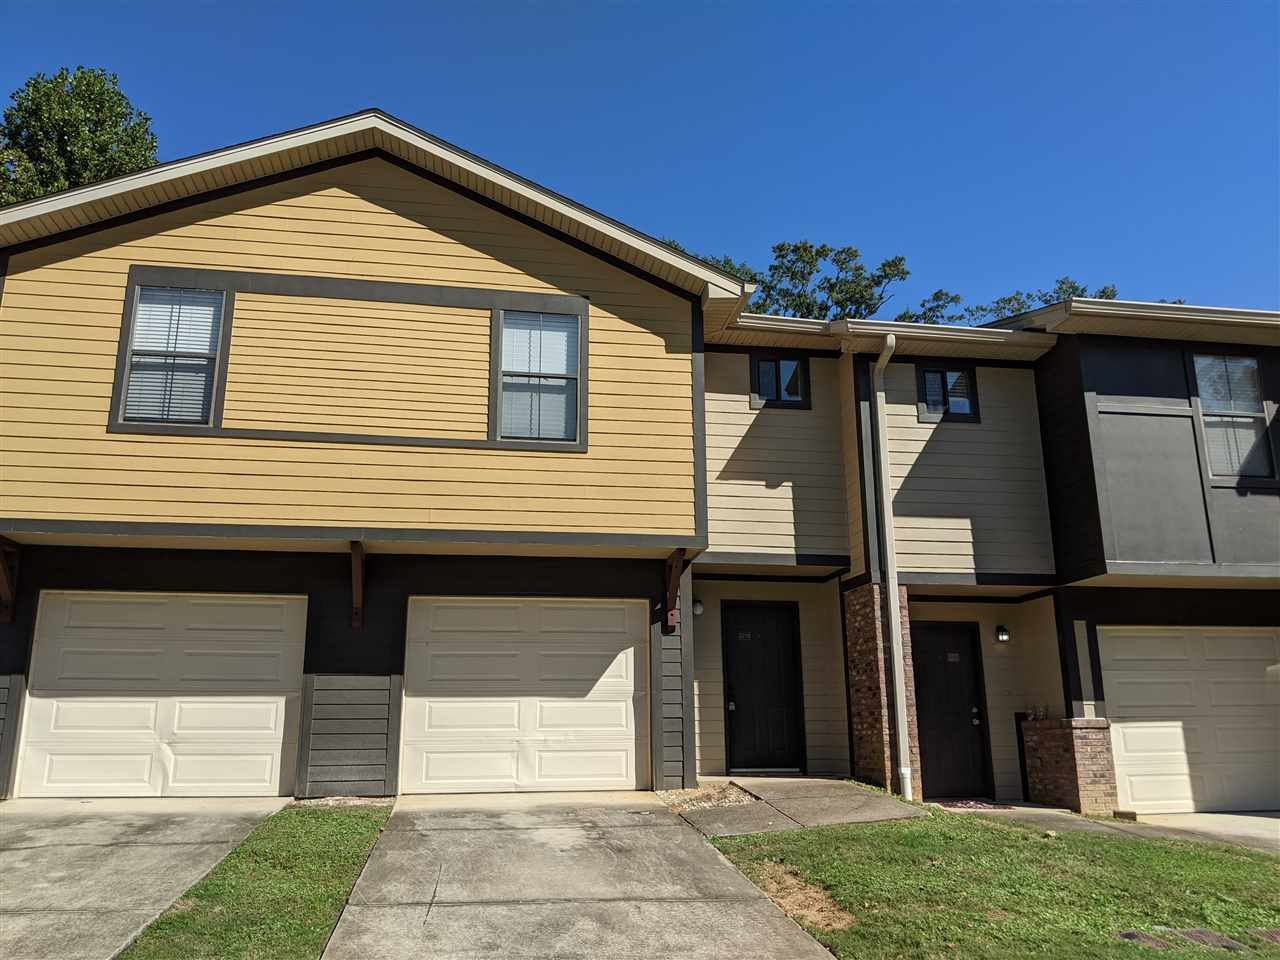 2310 Timber Oaks Lane, Tallahassee, FL 32304 - MLS#: 325450